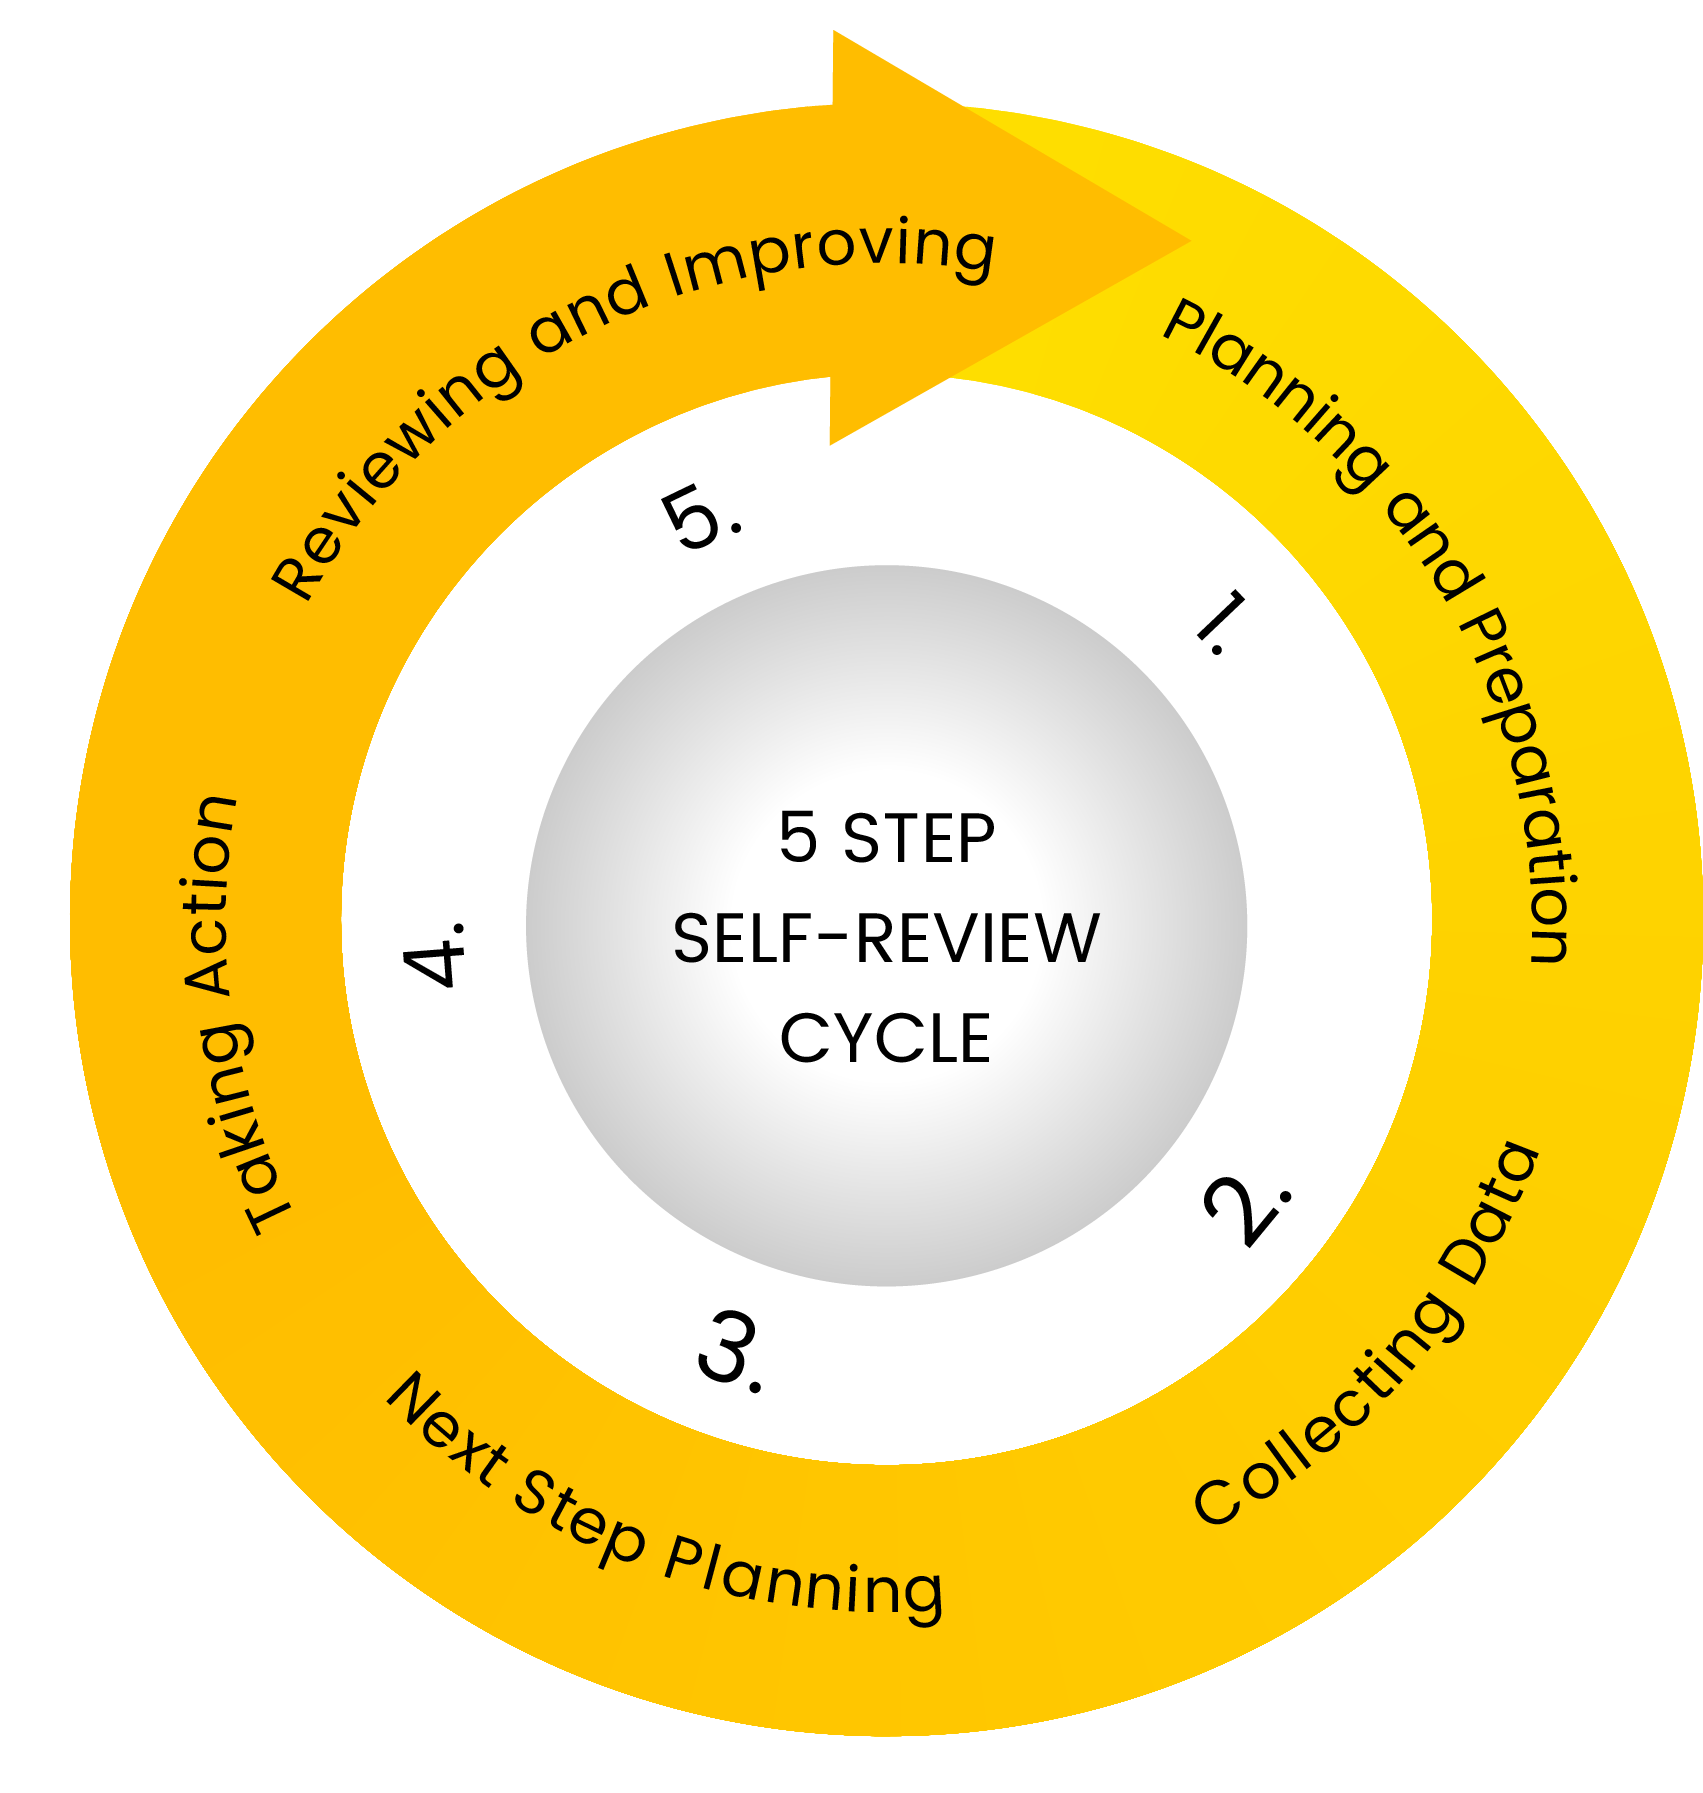 Inclusive Practices toolkit 5 Step self-review wheel